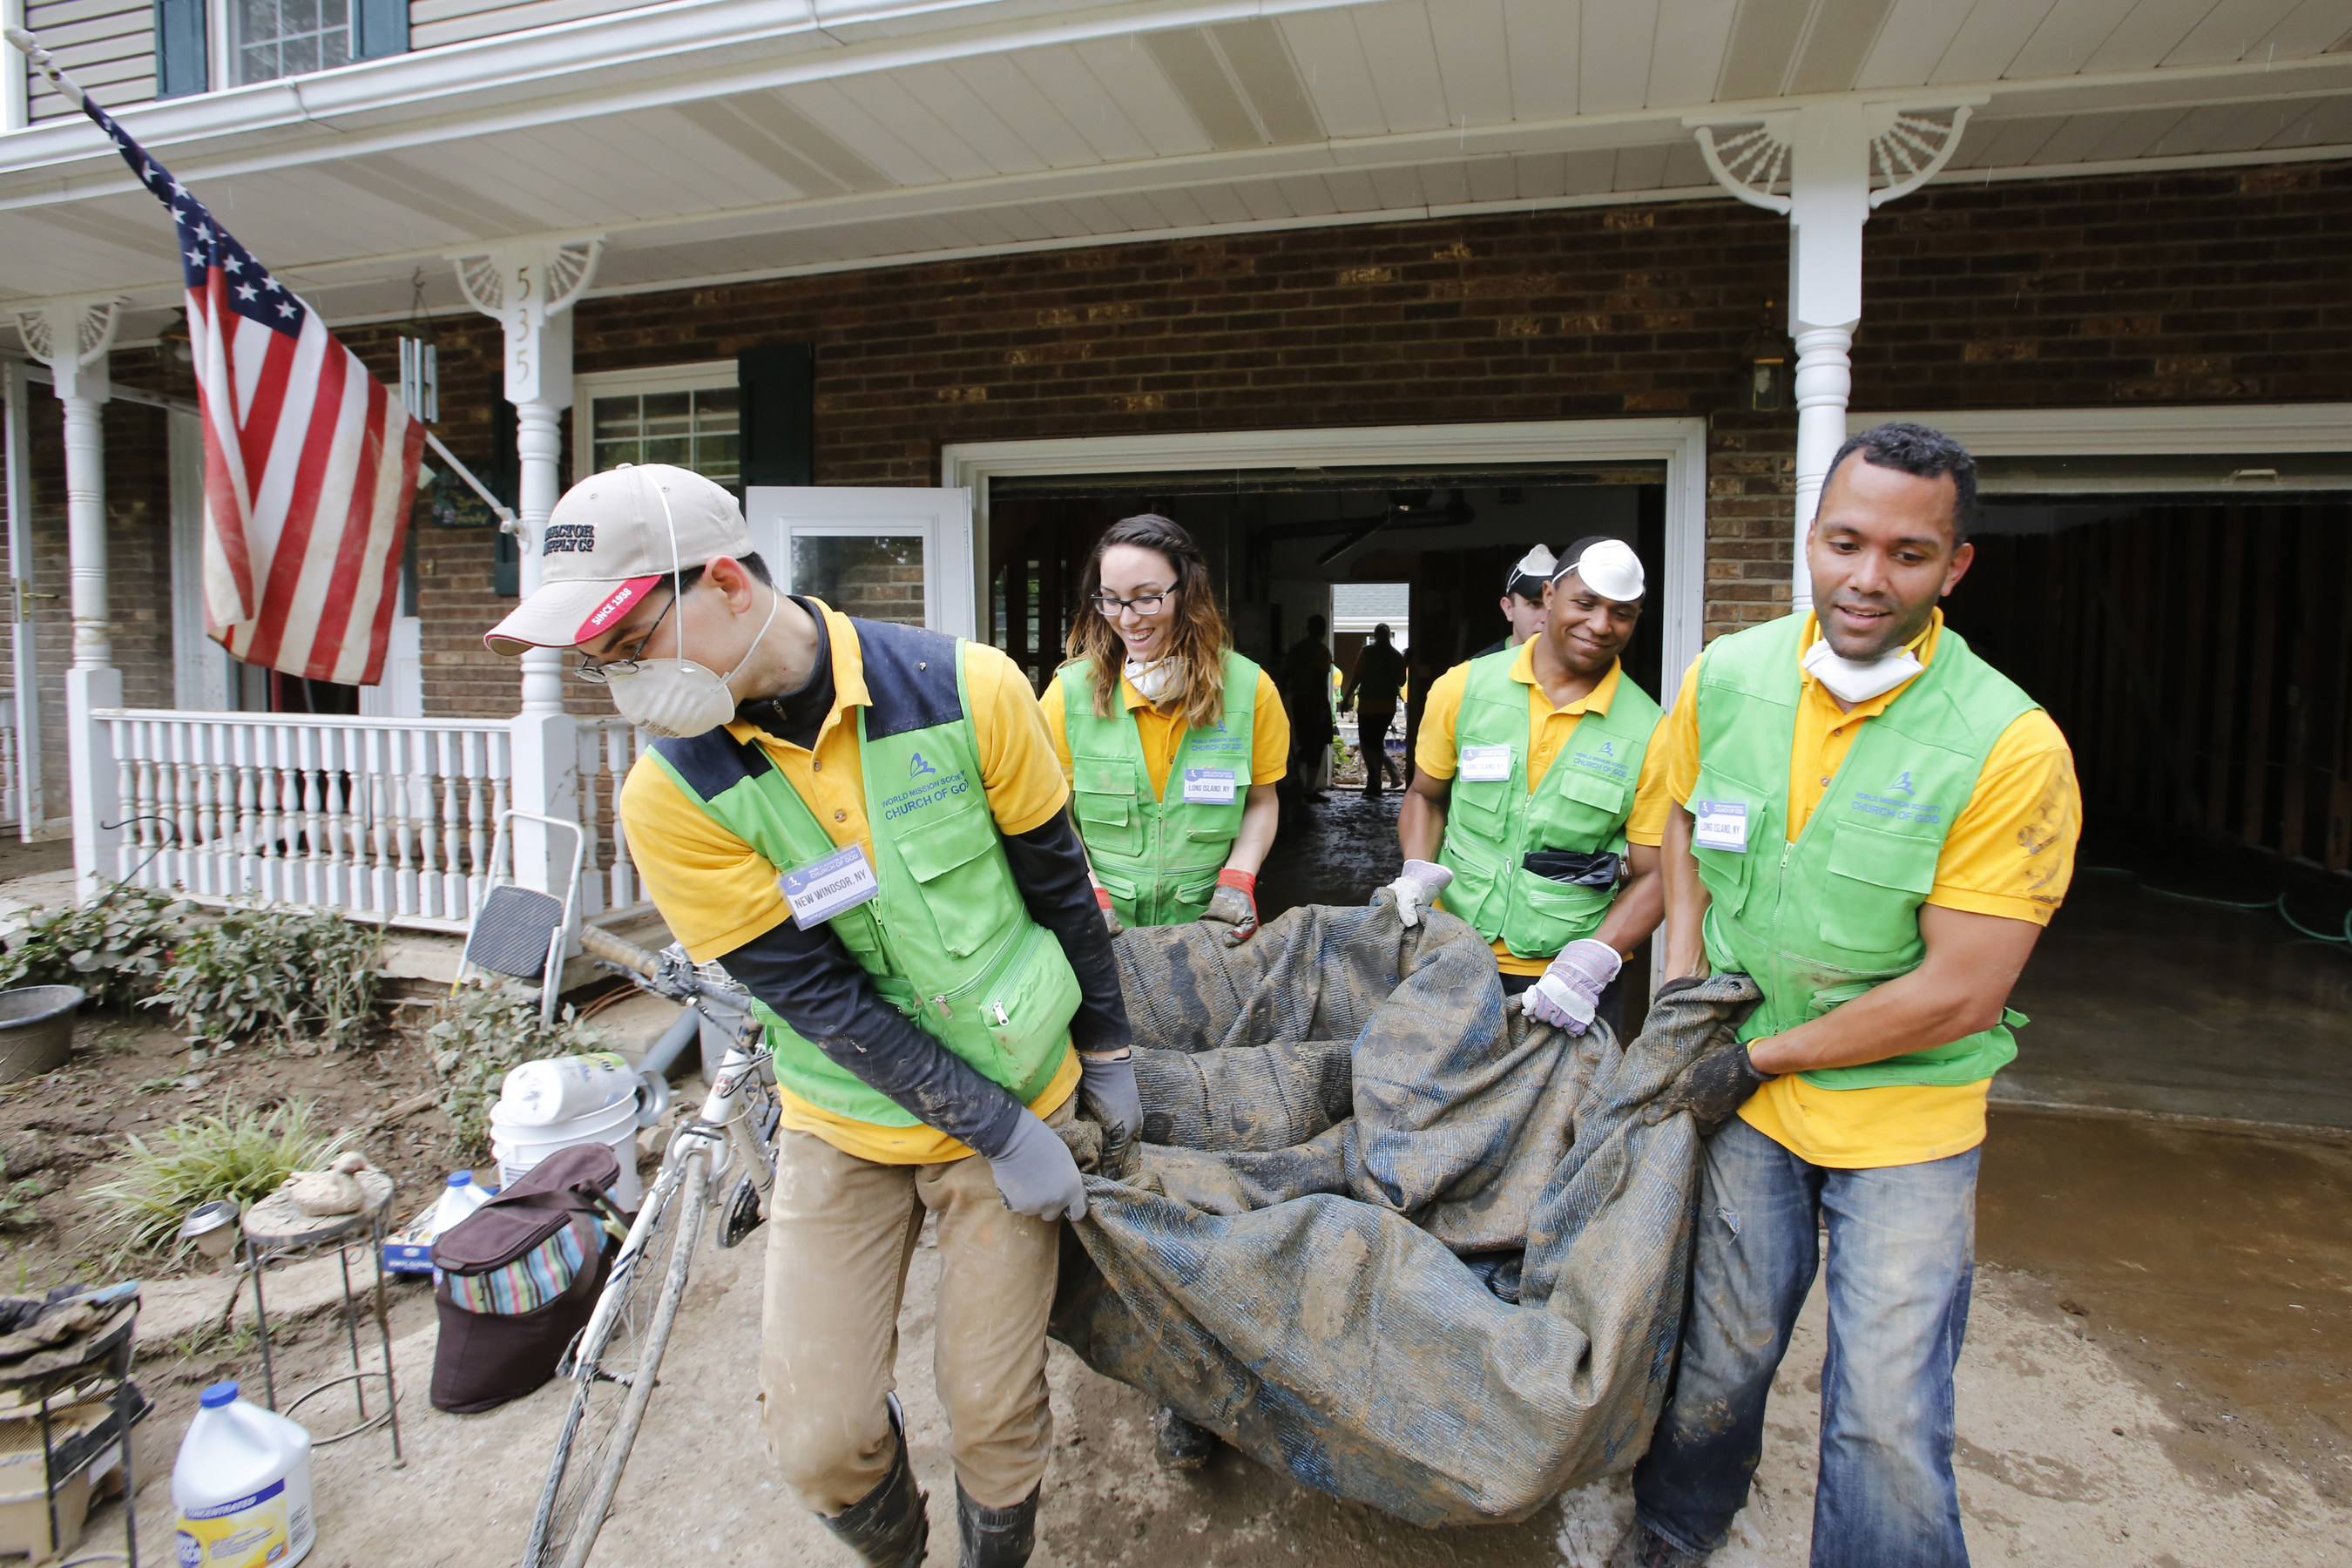 Church of God volunteers are trained first-responders who have helped in numerous disaster relief efforts on the East Coast.